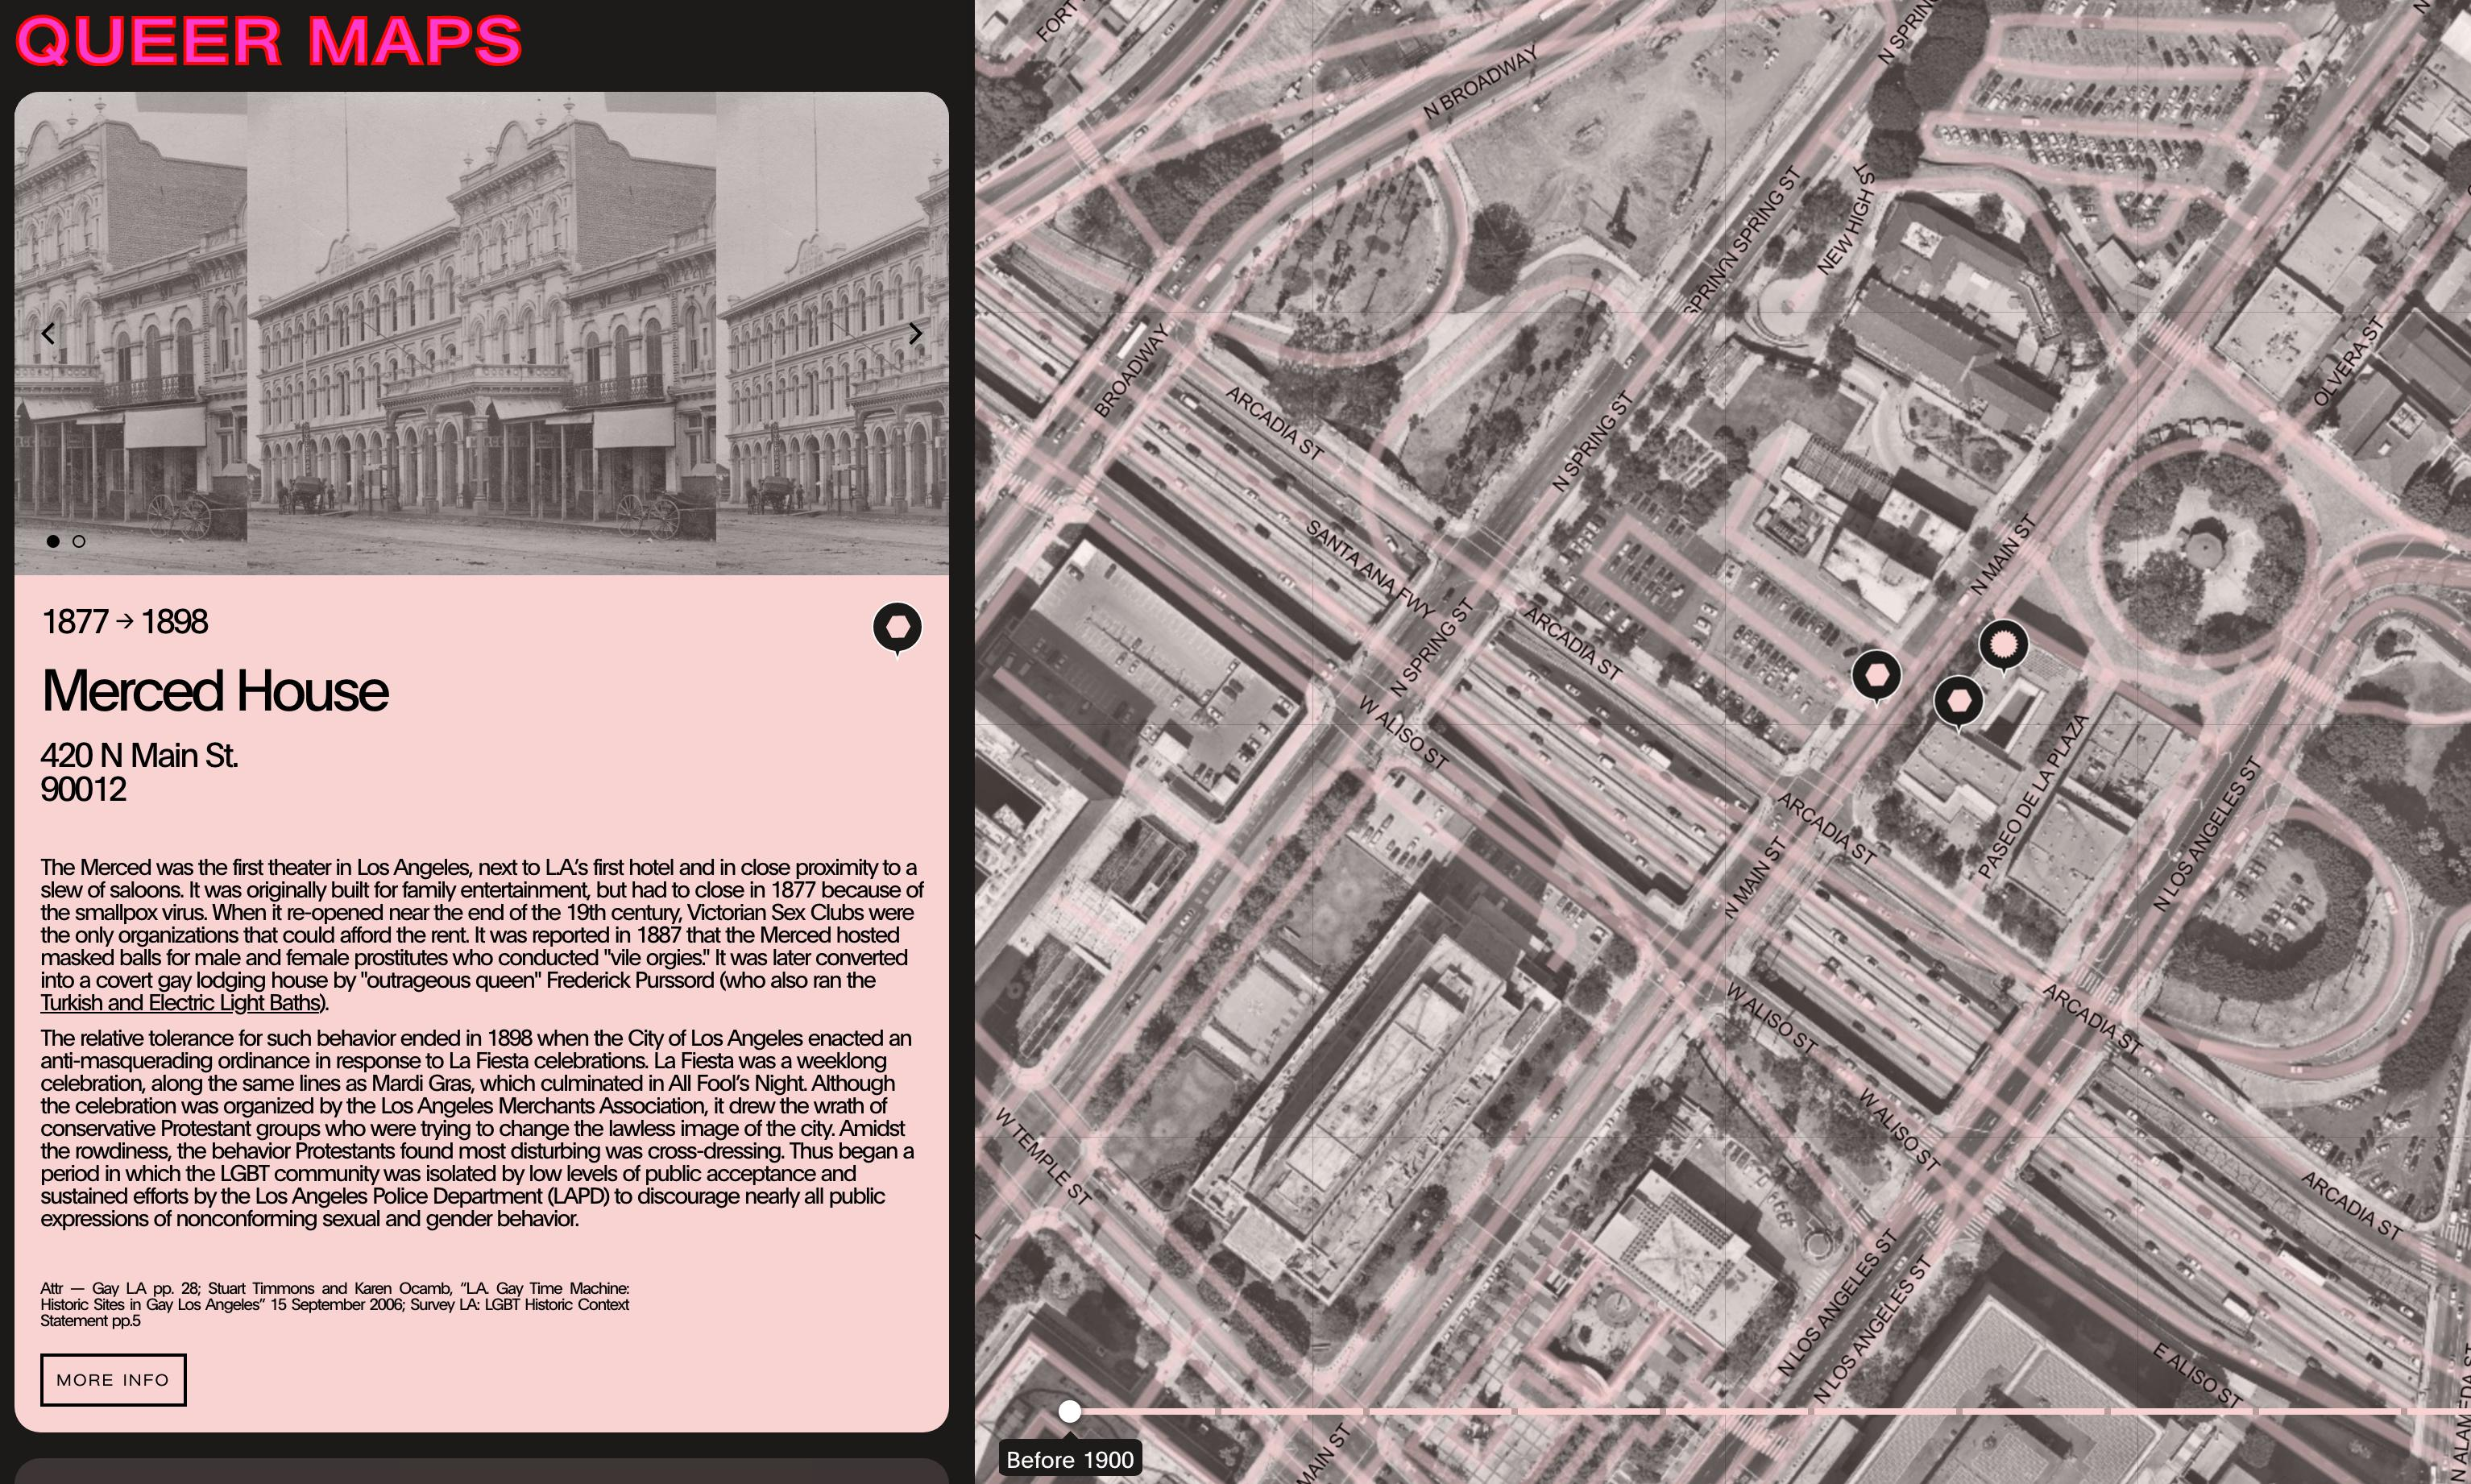 Masked balls and gay uprisings: Queer Maps is a guide to 150 years of LGBTQ history